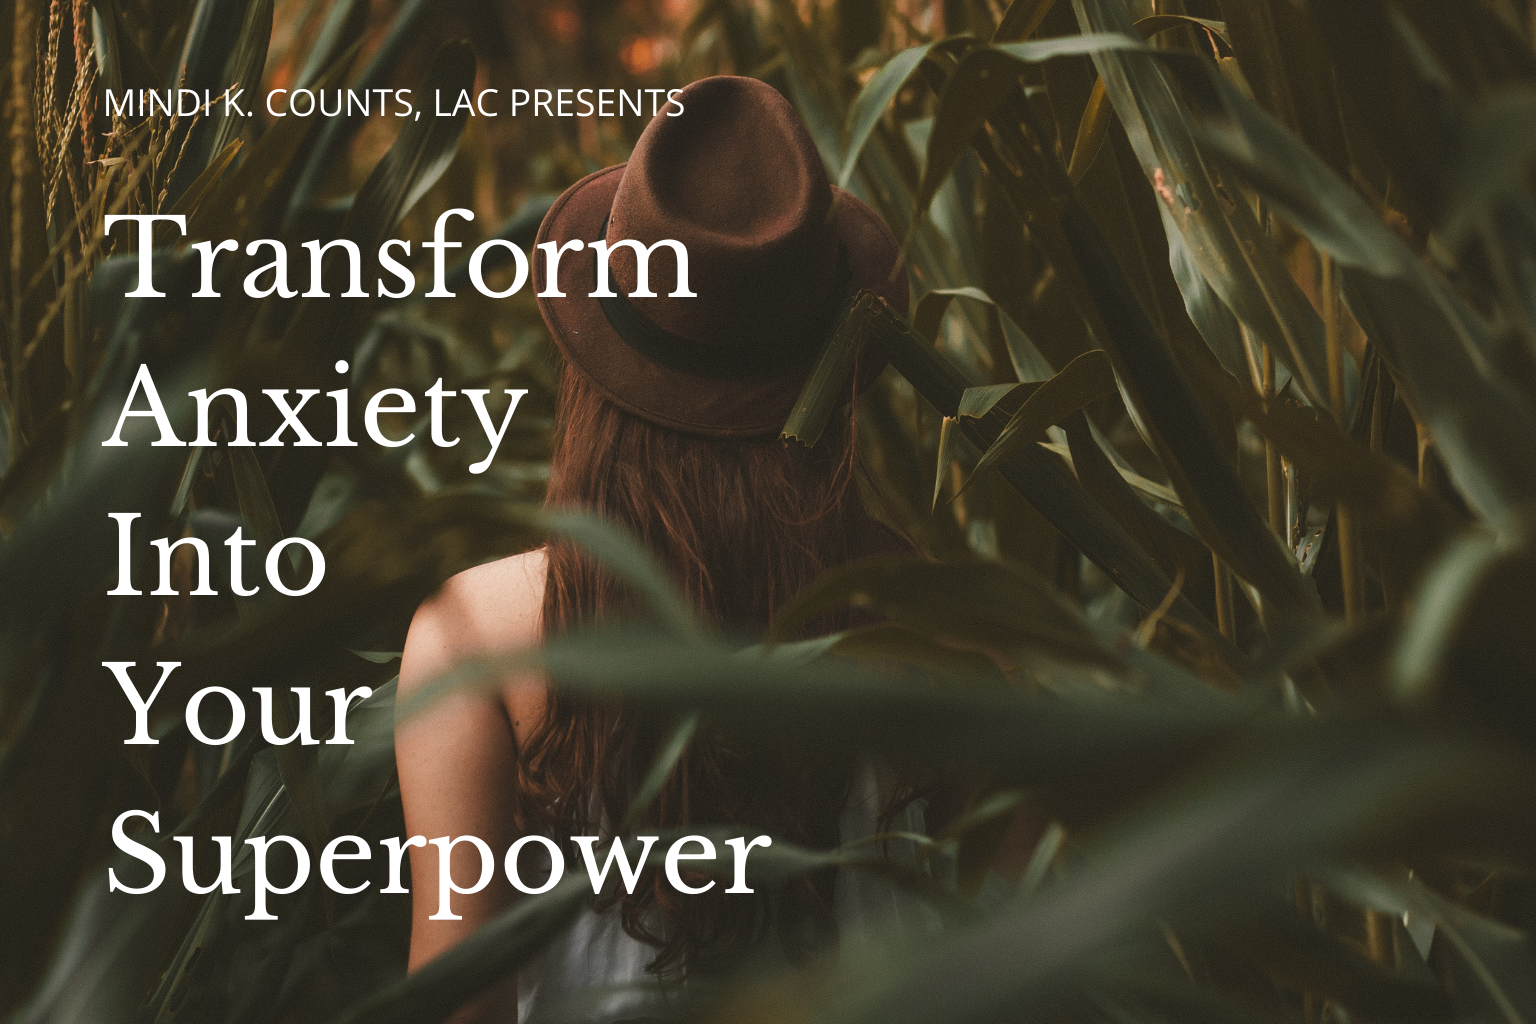 Transform Anxiety Into Your Superpower